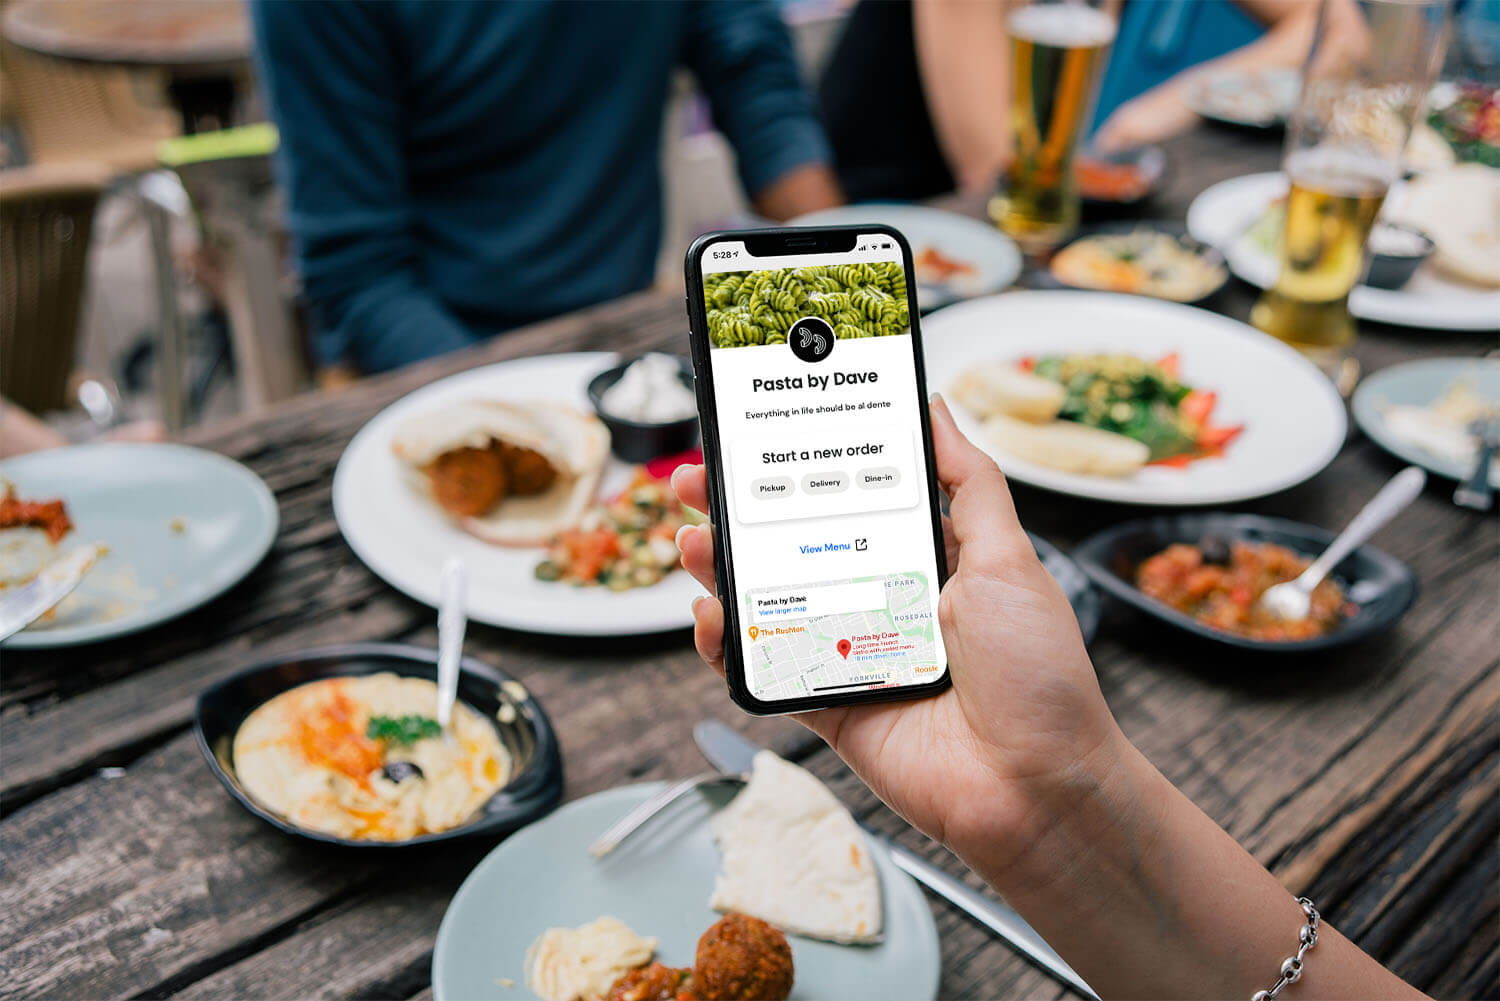 Why Linktree is Great... But Not for Restaurants